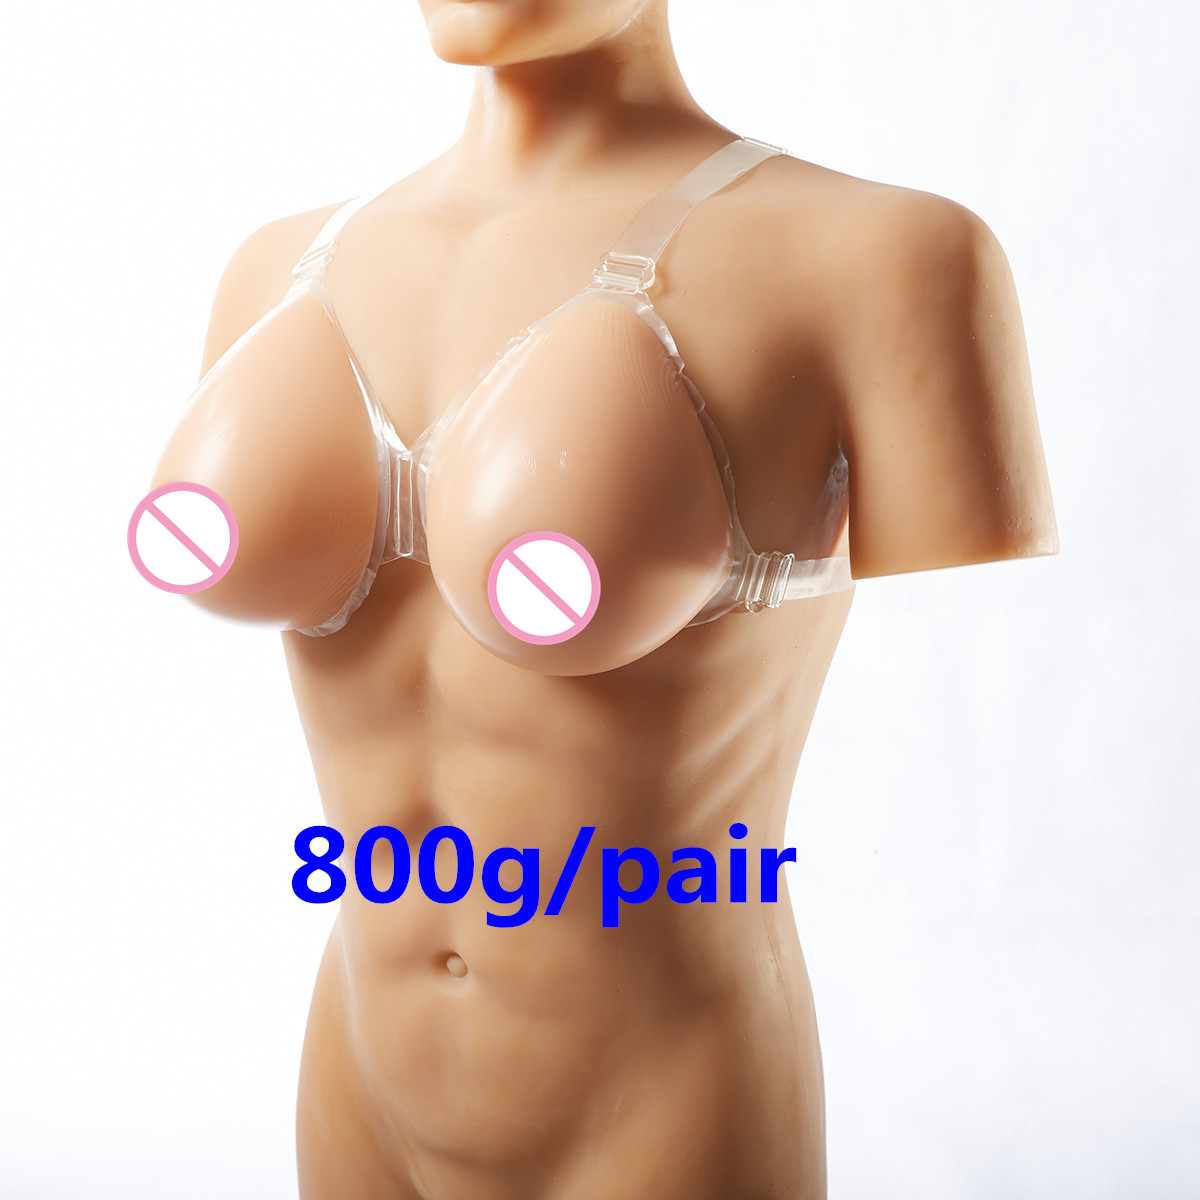 Buy 800g/pair Crossdresser Silicone Breast Forms Small Fake Boobs Shoulder Strap Breast Prosthesis Artificial Breast